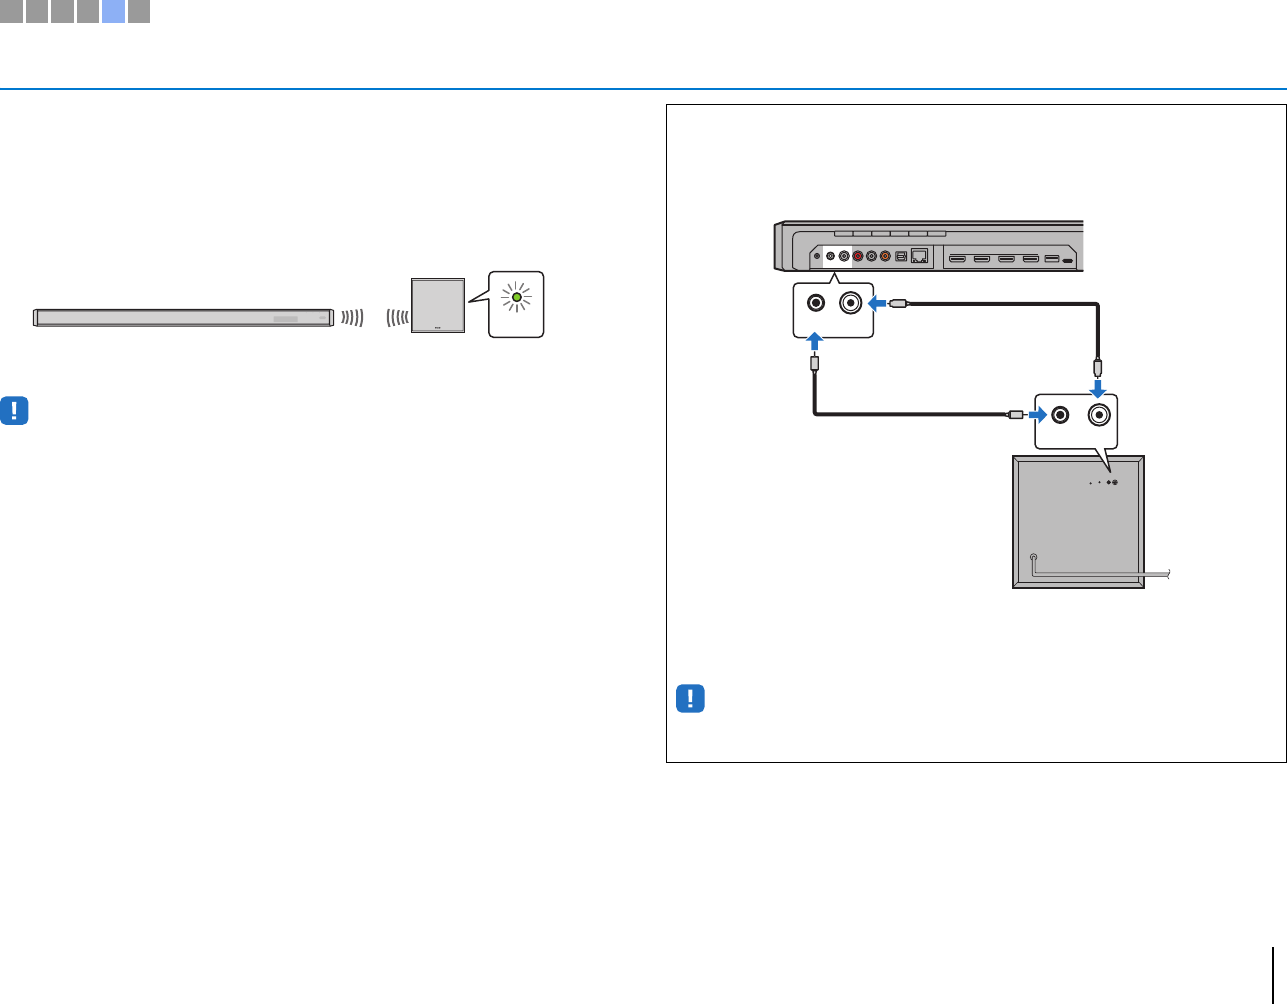 Yamaha Ysp 2700 Owners Manual Web Yh905a0en Om Ucabglv En Download Image 100 Amp Sub Panel Wiring Diagram Pc Android Iphone Preparations E Connecting The Power Cable 29